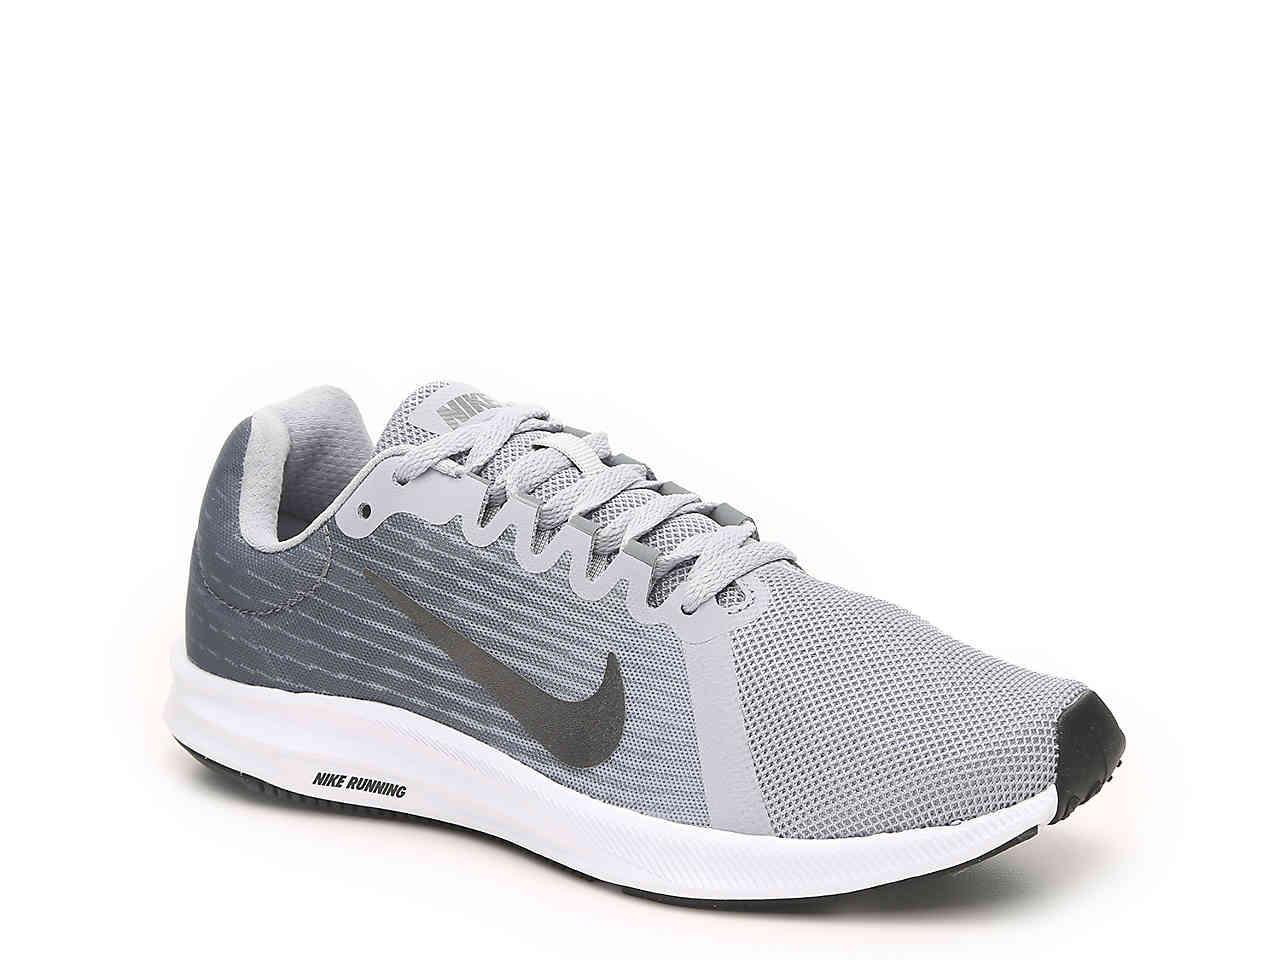 cc5a4f75164 Lyst - Nike Downshifter 8 Lightweight Running Shoe in Gray